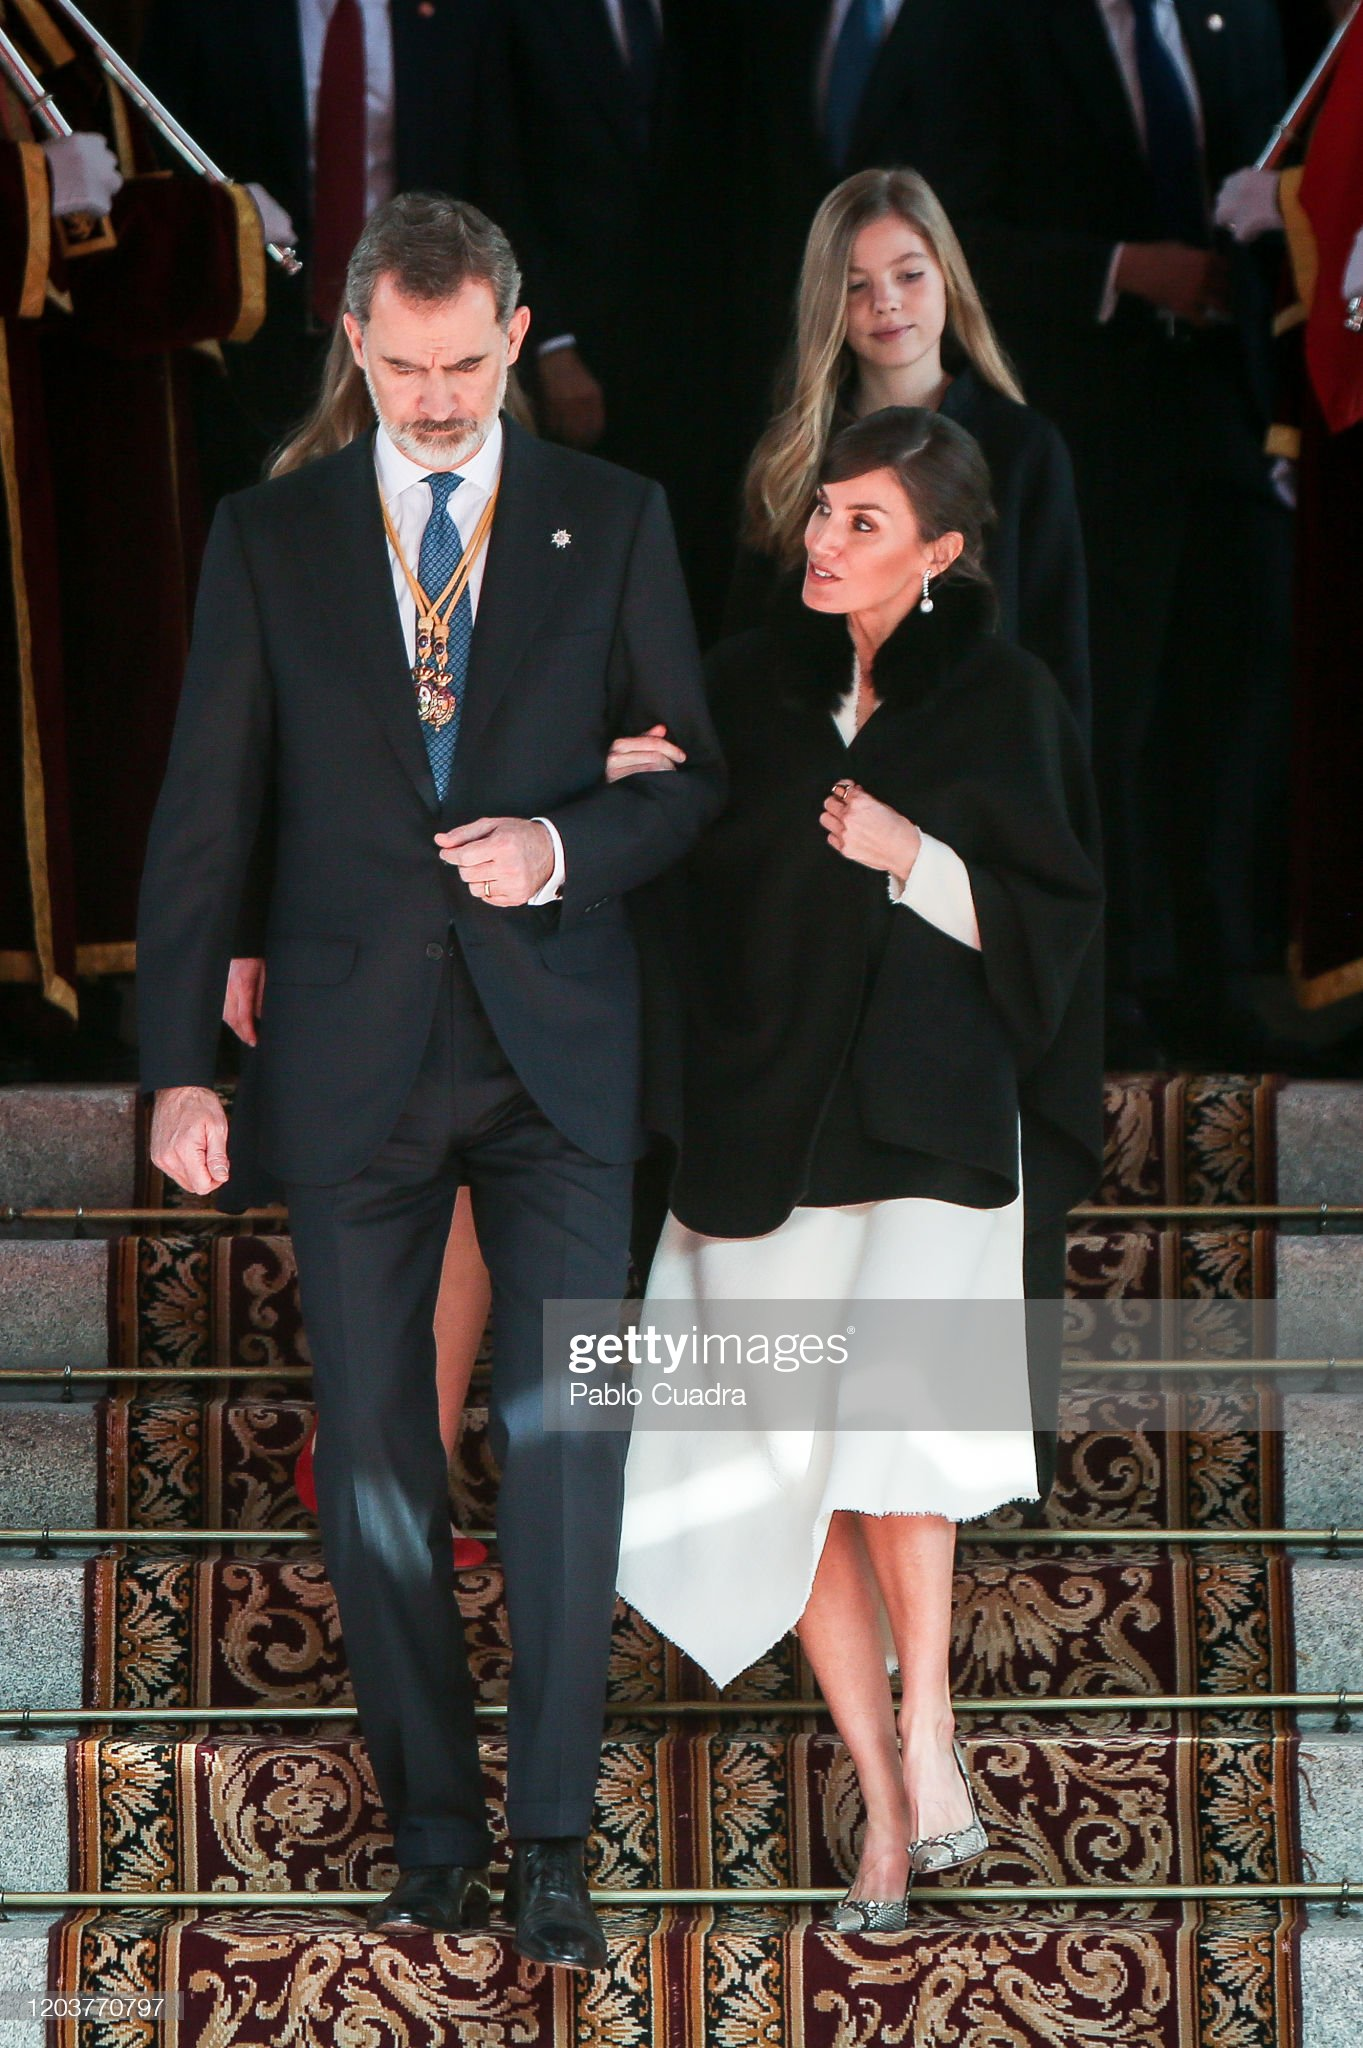 https://media.gettyimages.com/photos/king-felipe-vi-of-spain-queen-letizia-of-spain-and-princess-sofia-of-picture-id1203770797?s=2048x2048